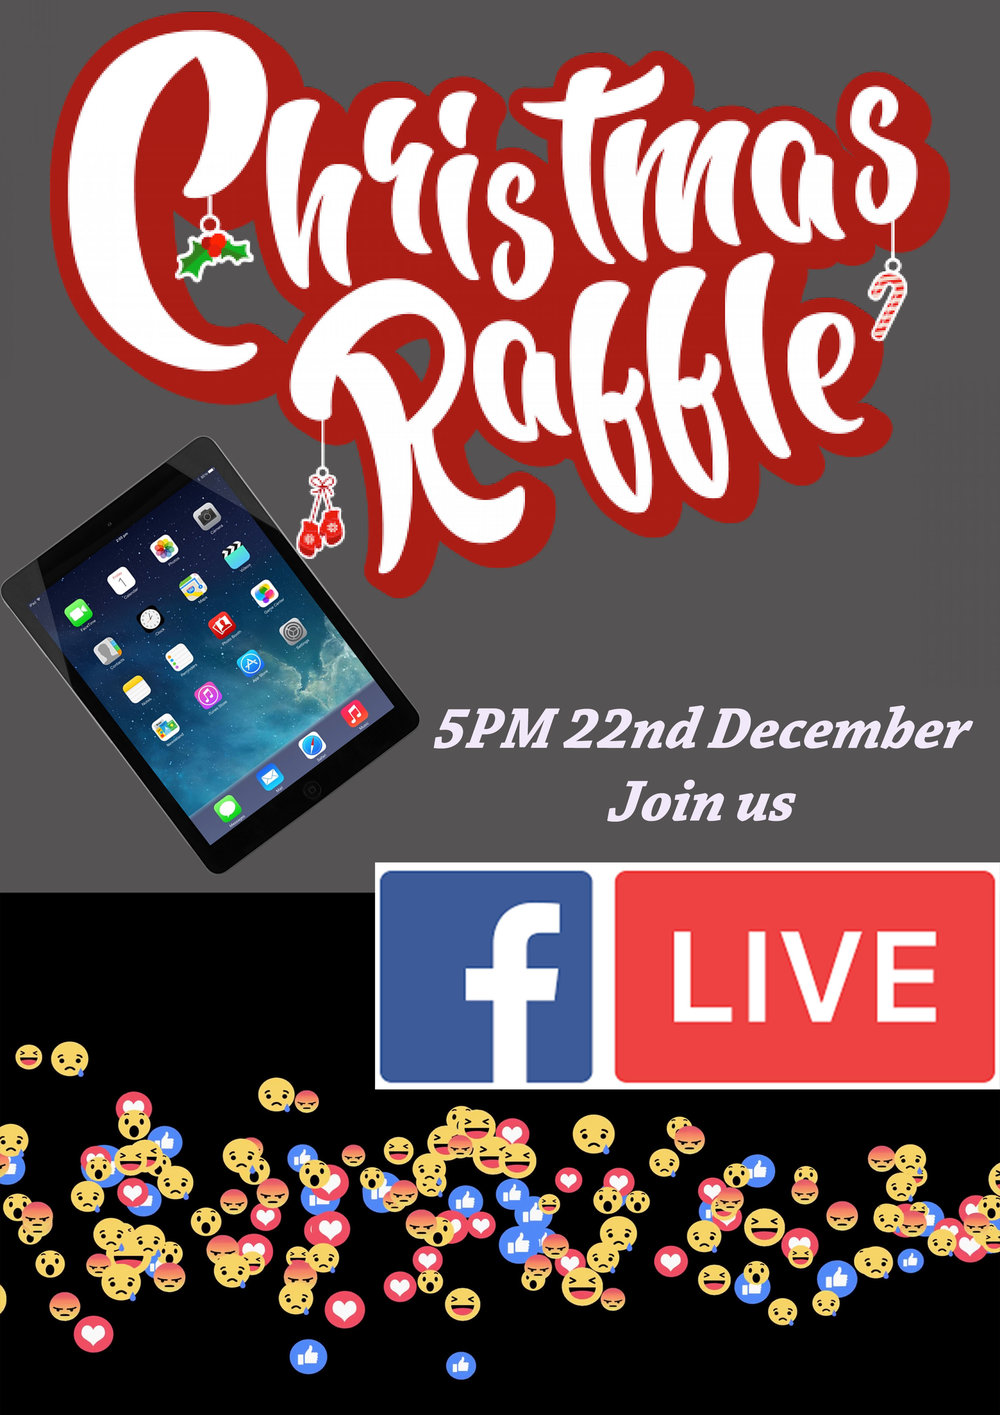 Christmas Raffle for iPad Air at Compuworld 5pm